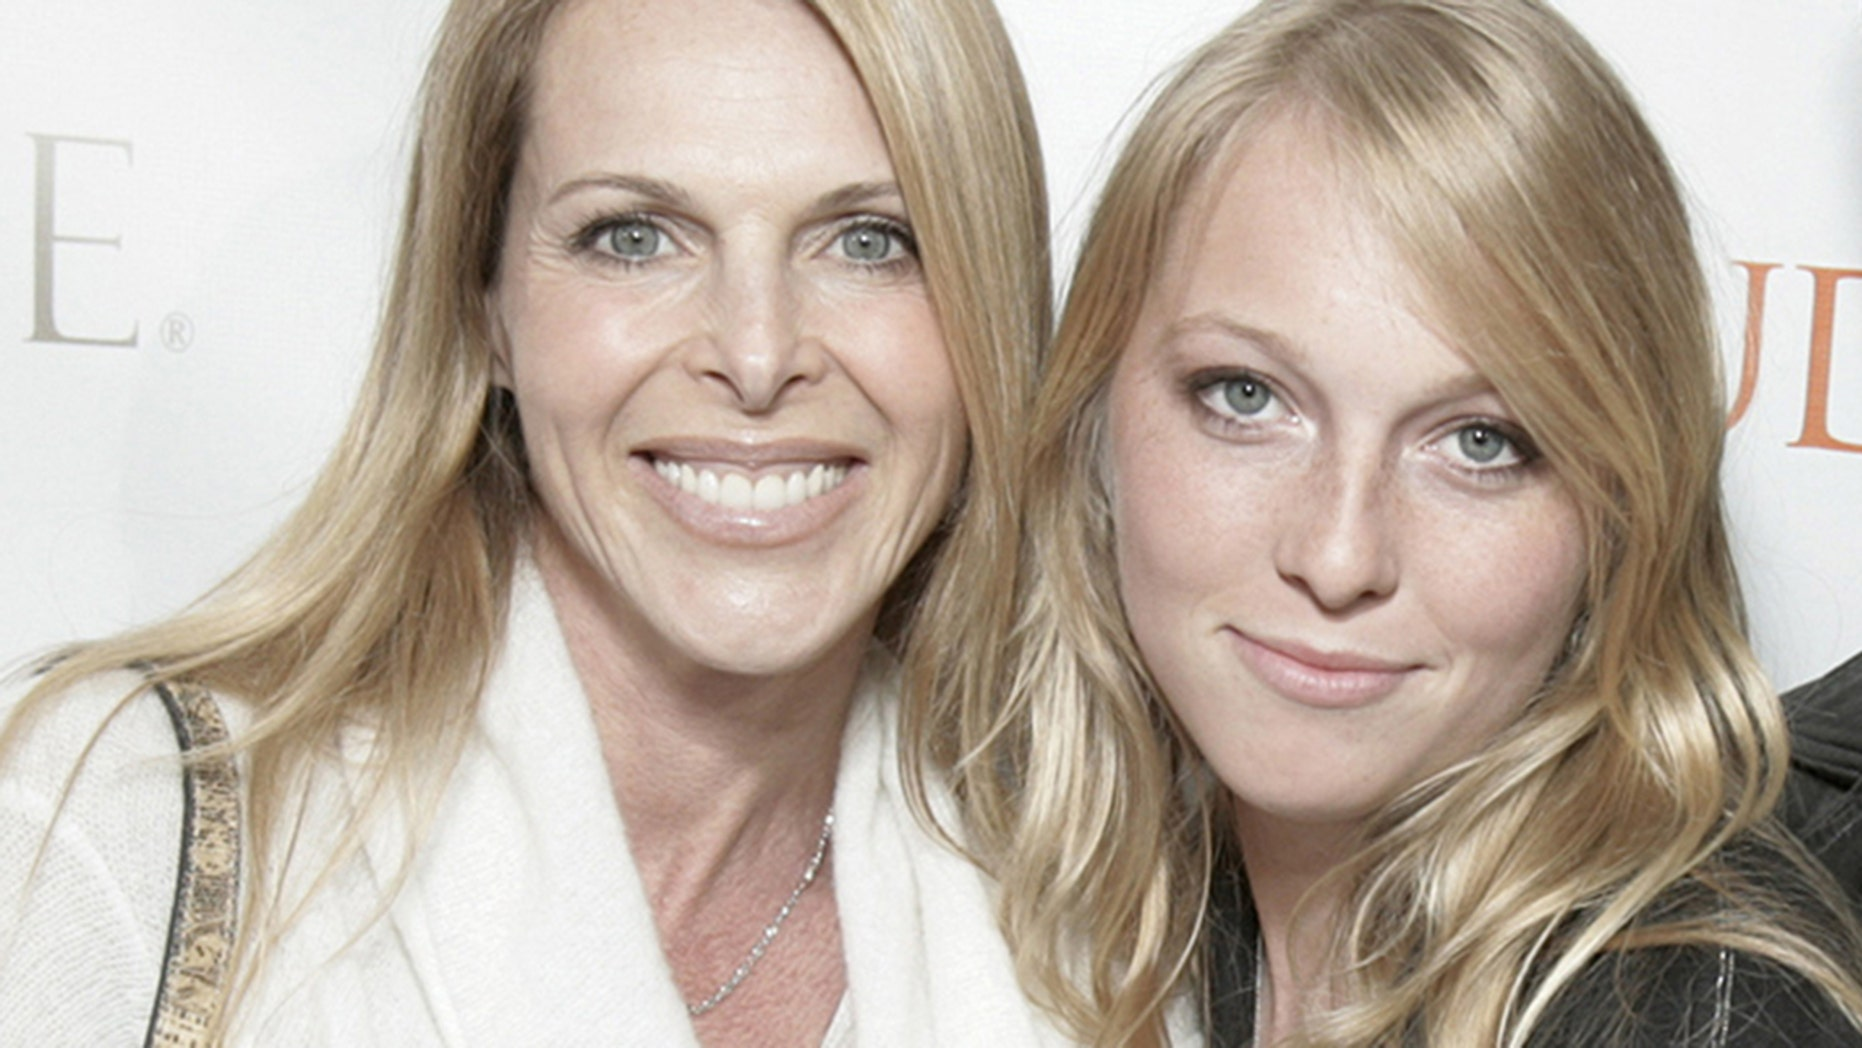 """Catherine Oxenberg, left, of """"Dynasty"""" fame and her daughter India, right, who used to be a member of the alleged sex cult Nxivm."""